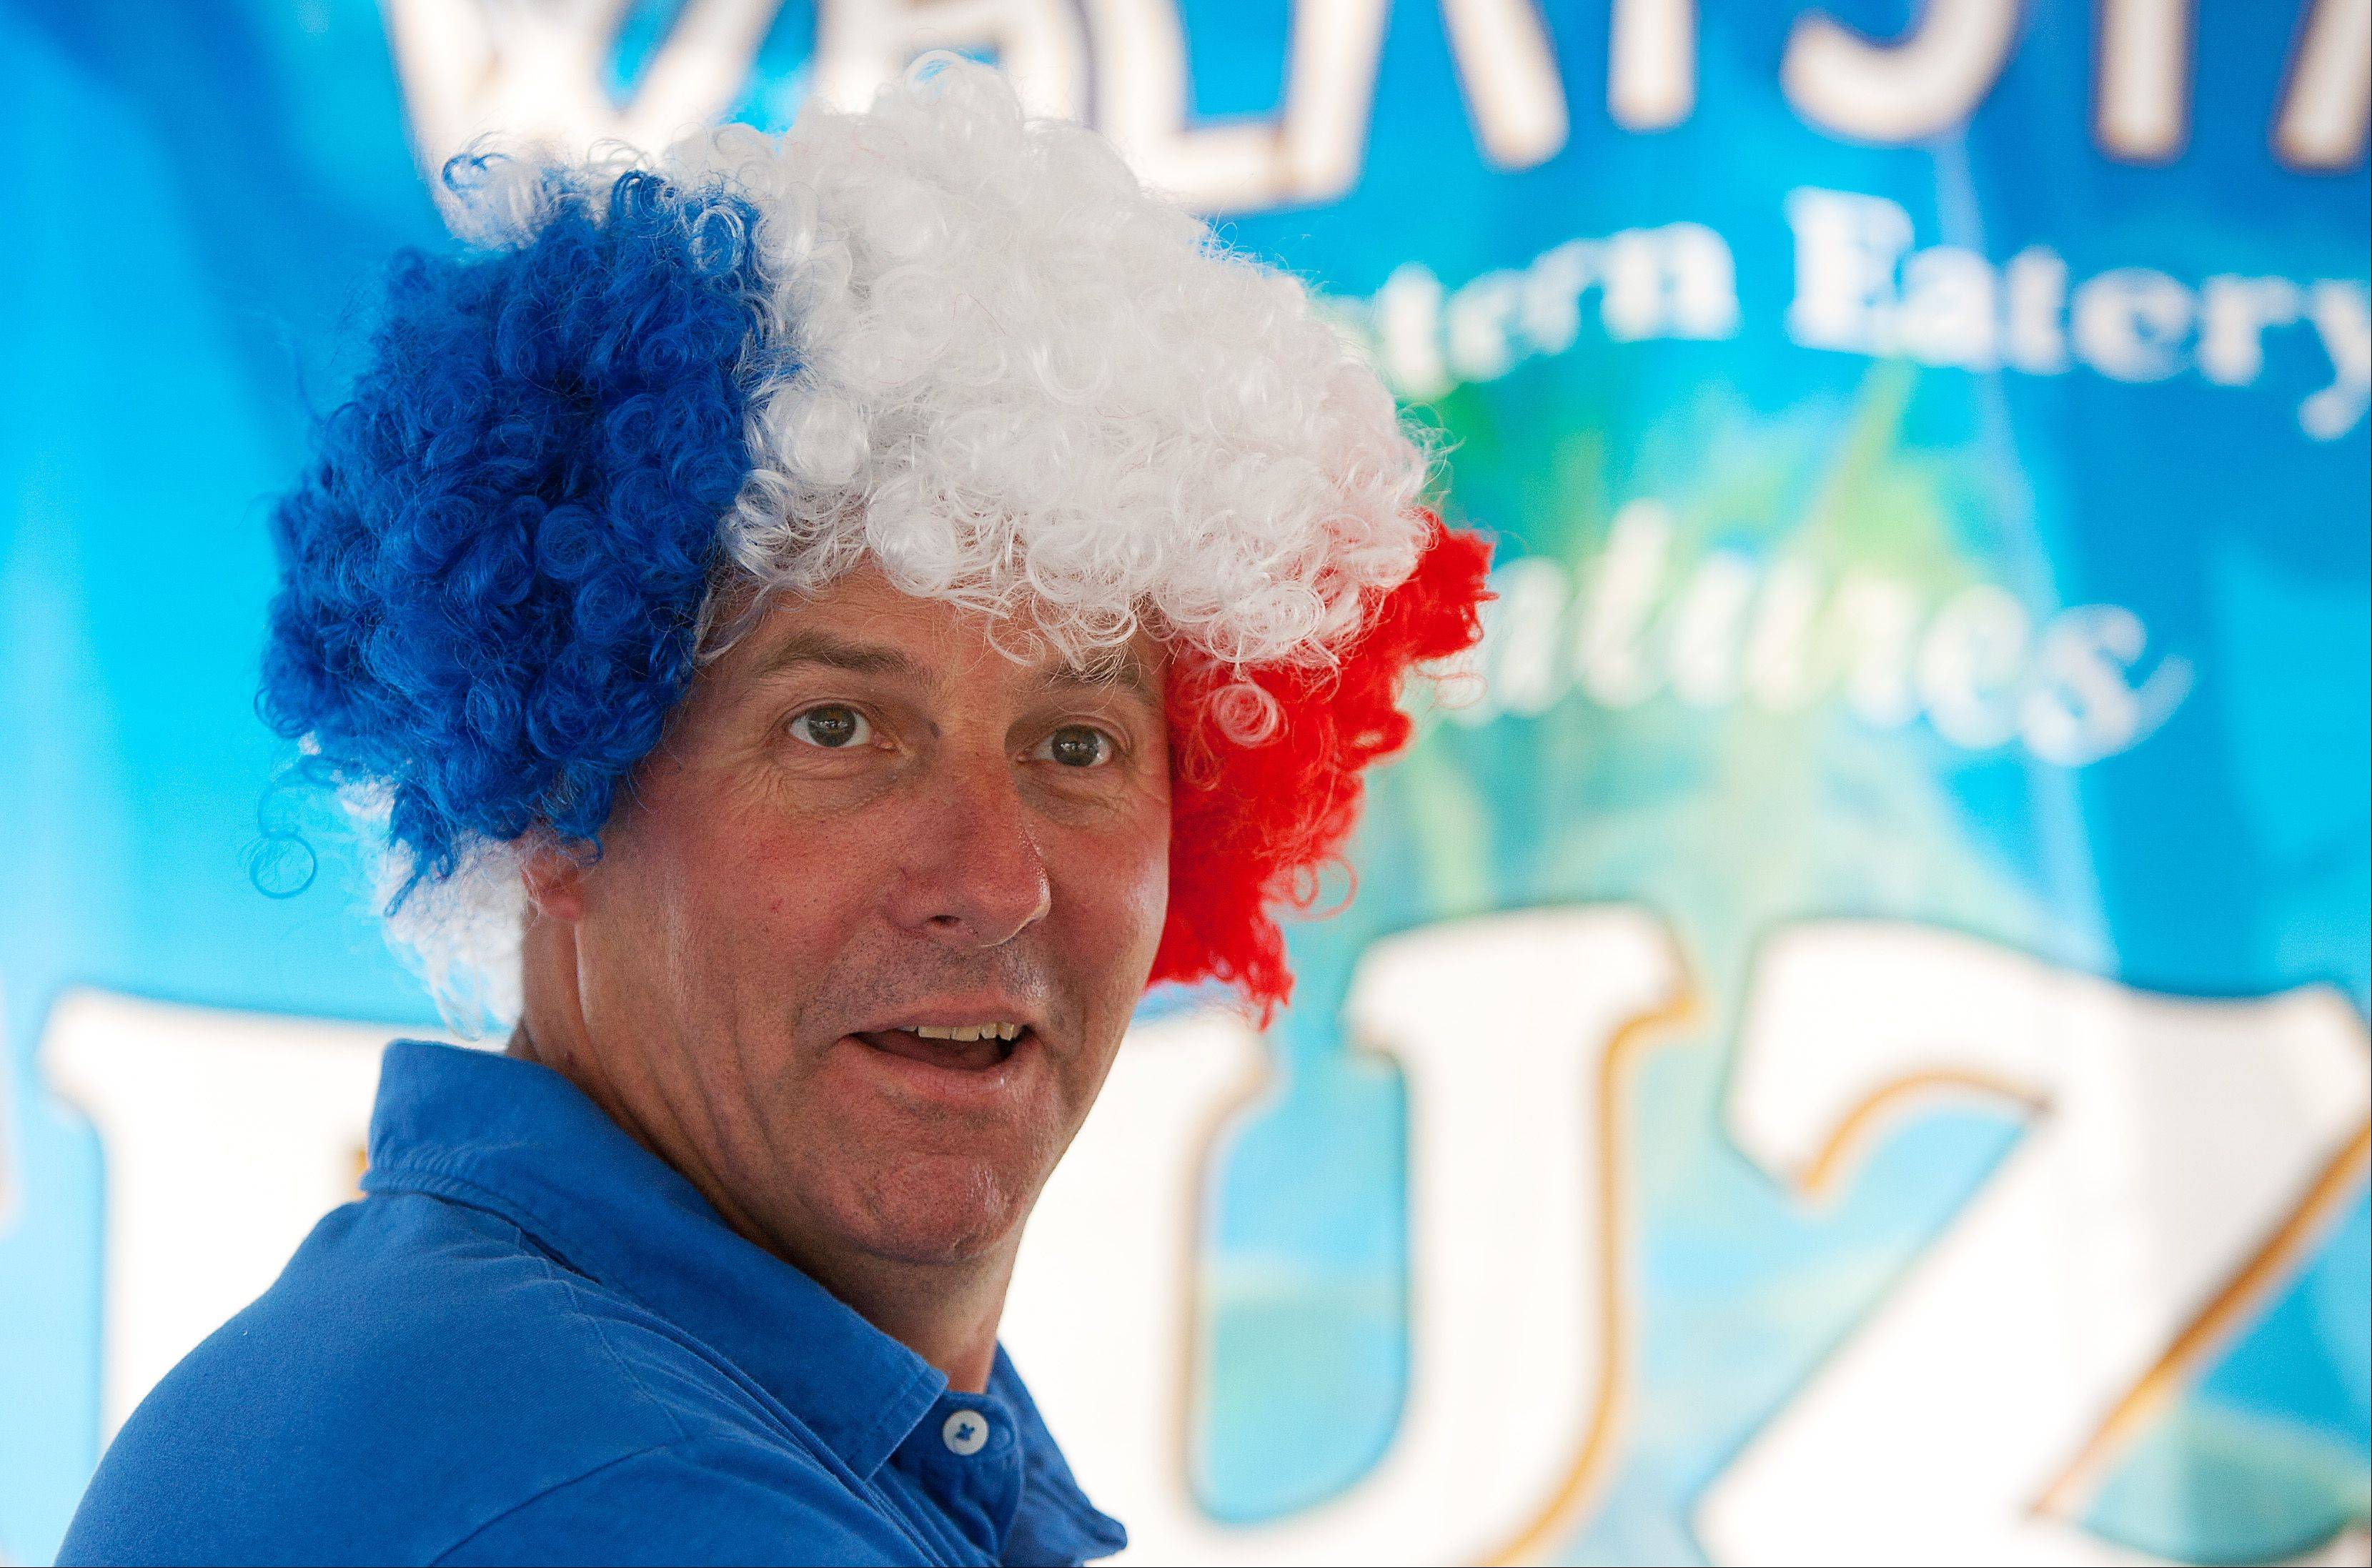 Gregg Ireland brings his patriotic hair humor to the Wheatstack Restaurant booth at the Eyes to the Skies Festival in Lisle.